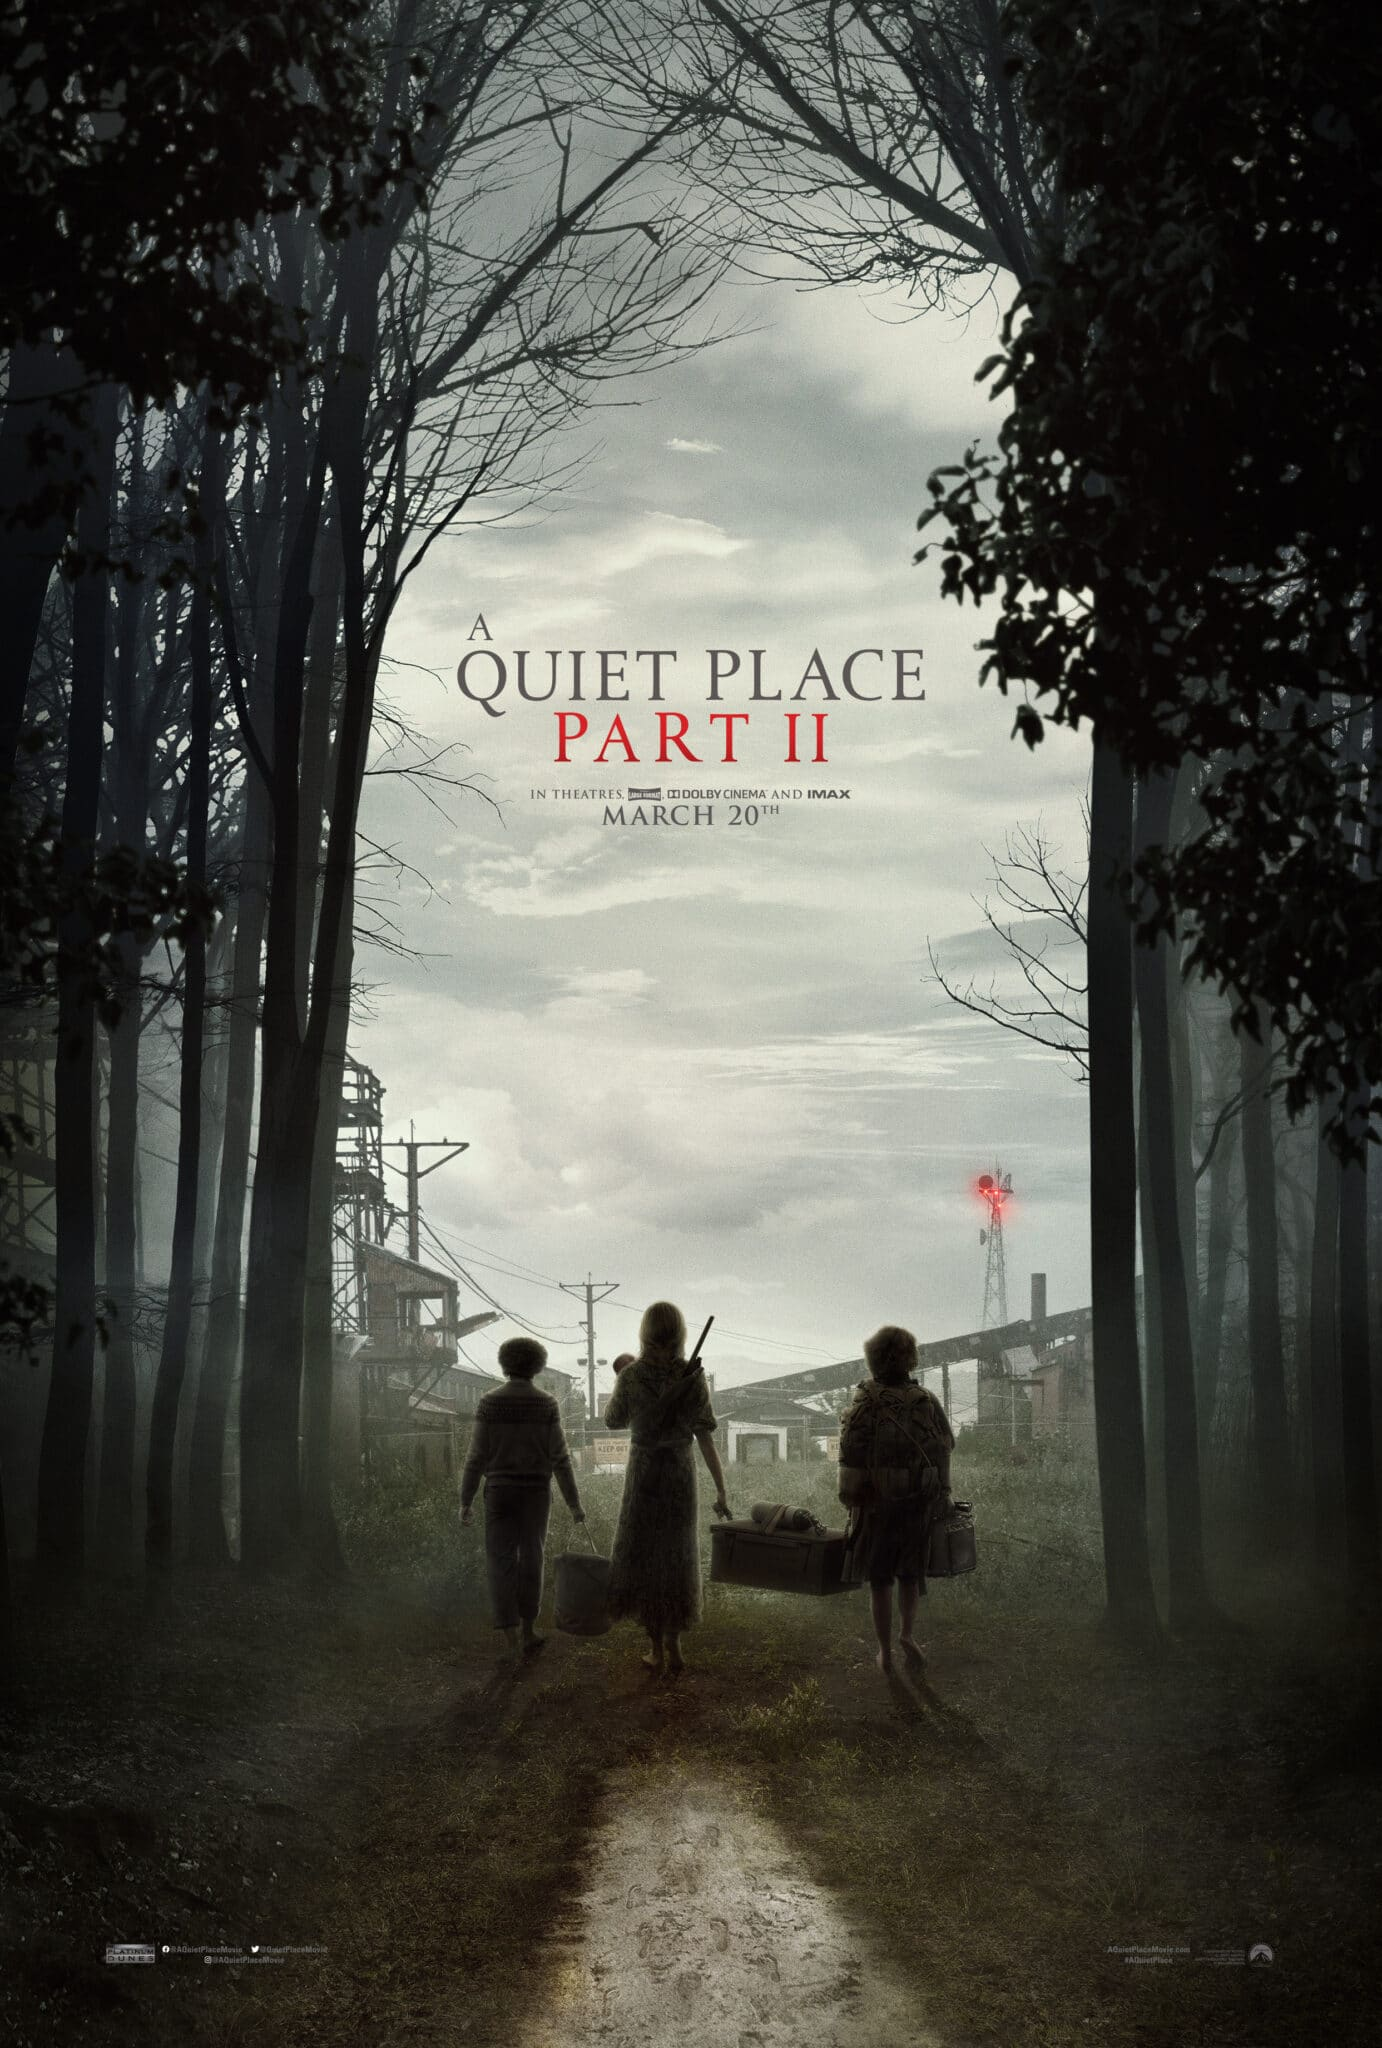 a-quiet-place-part-ii-2-poster-2021